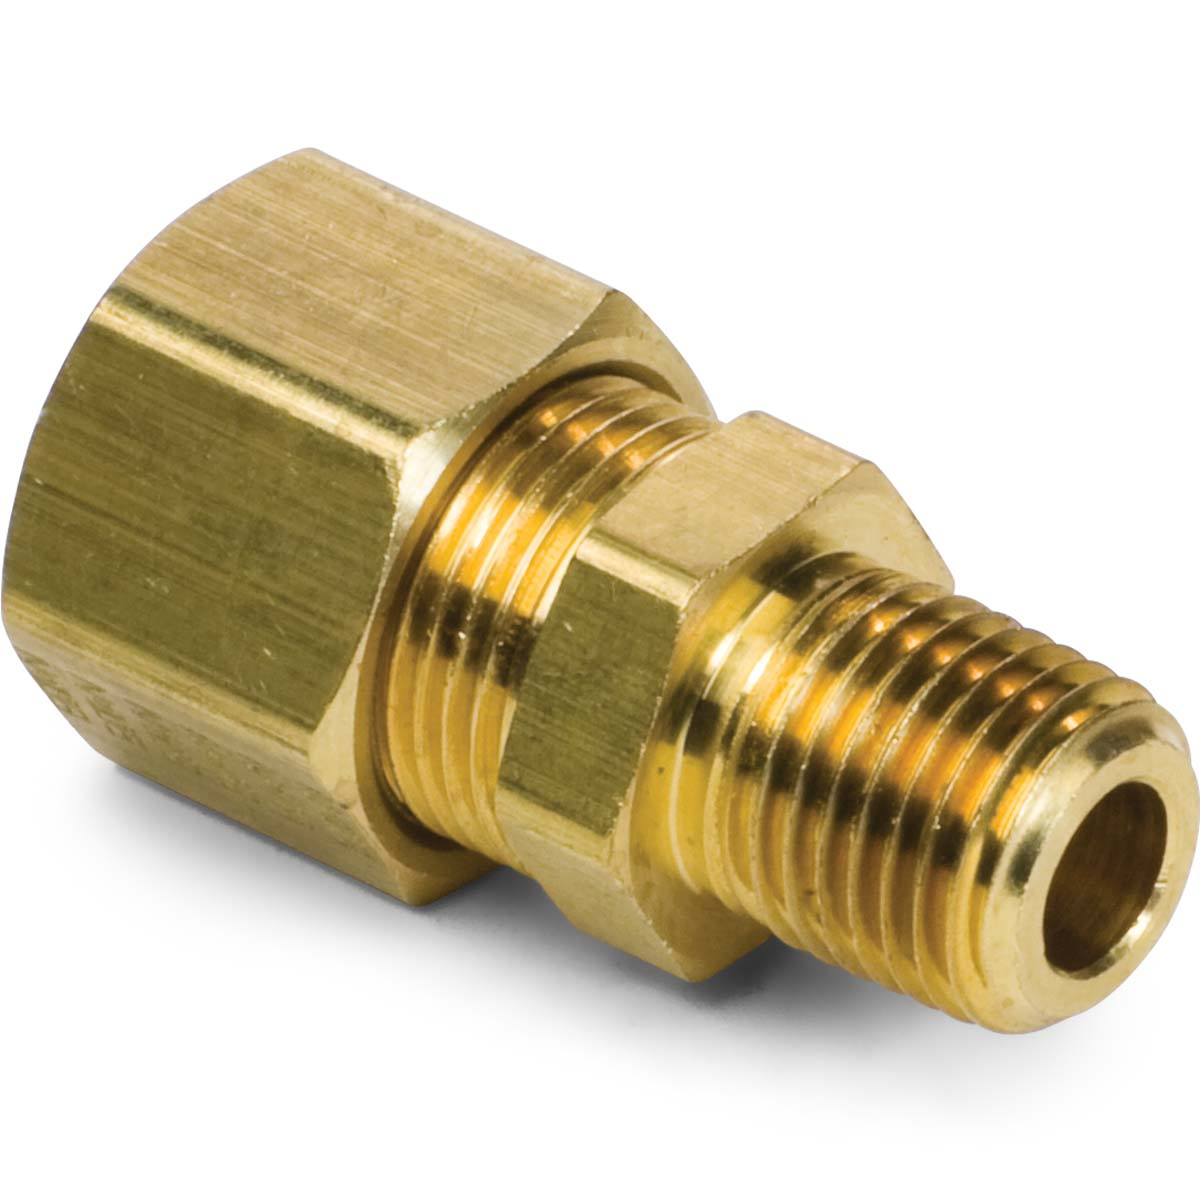 Brass compression male connector kimball midwest